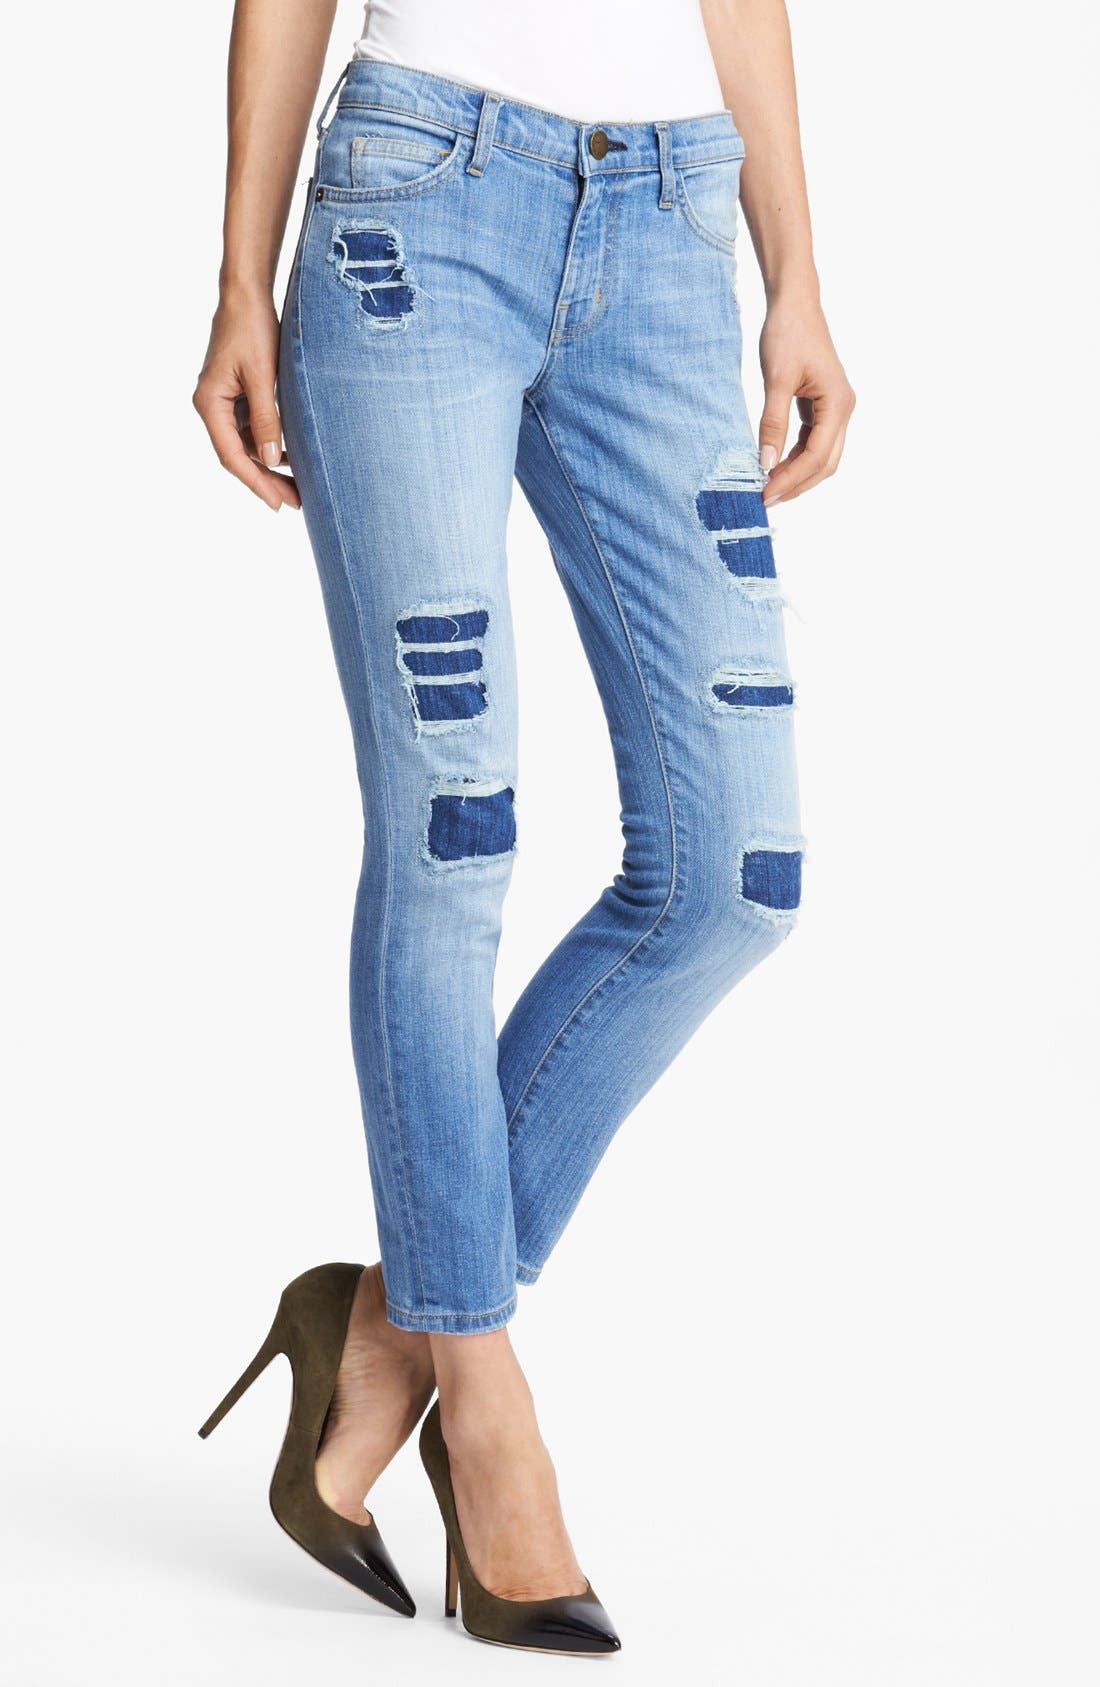 Main Image - Current/Elliott 'The Stiletto' Stretch Jeans (Omaha Patch Repair)